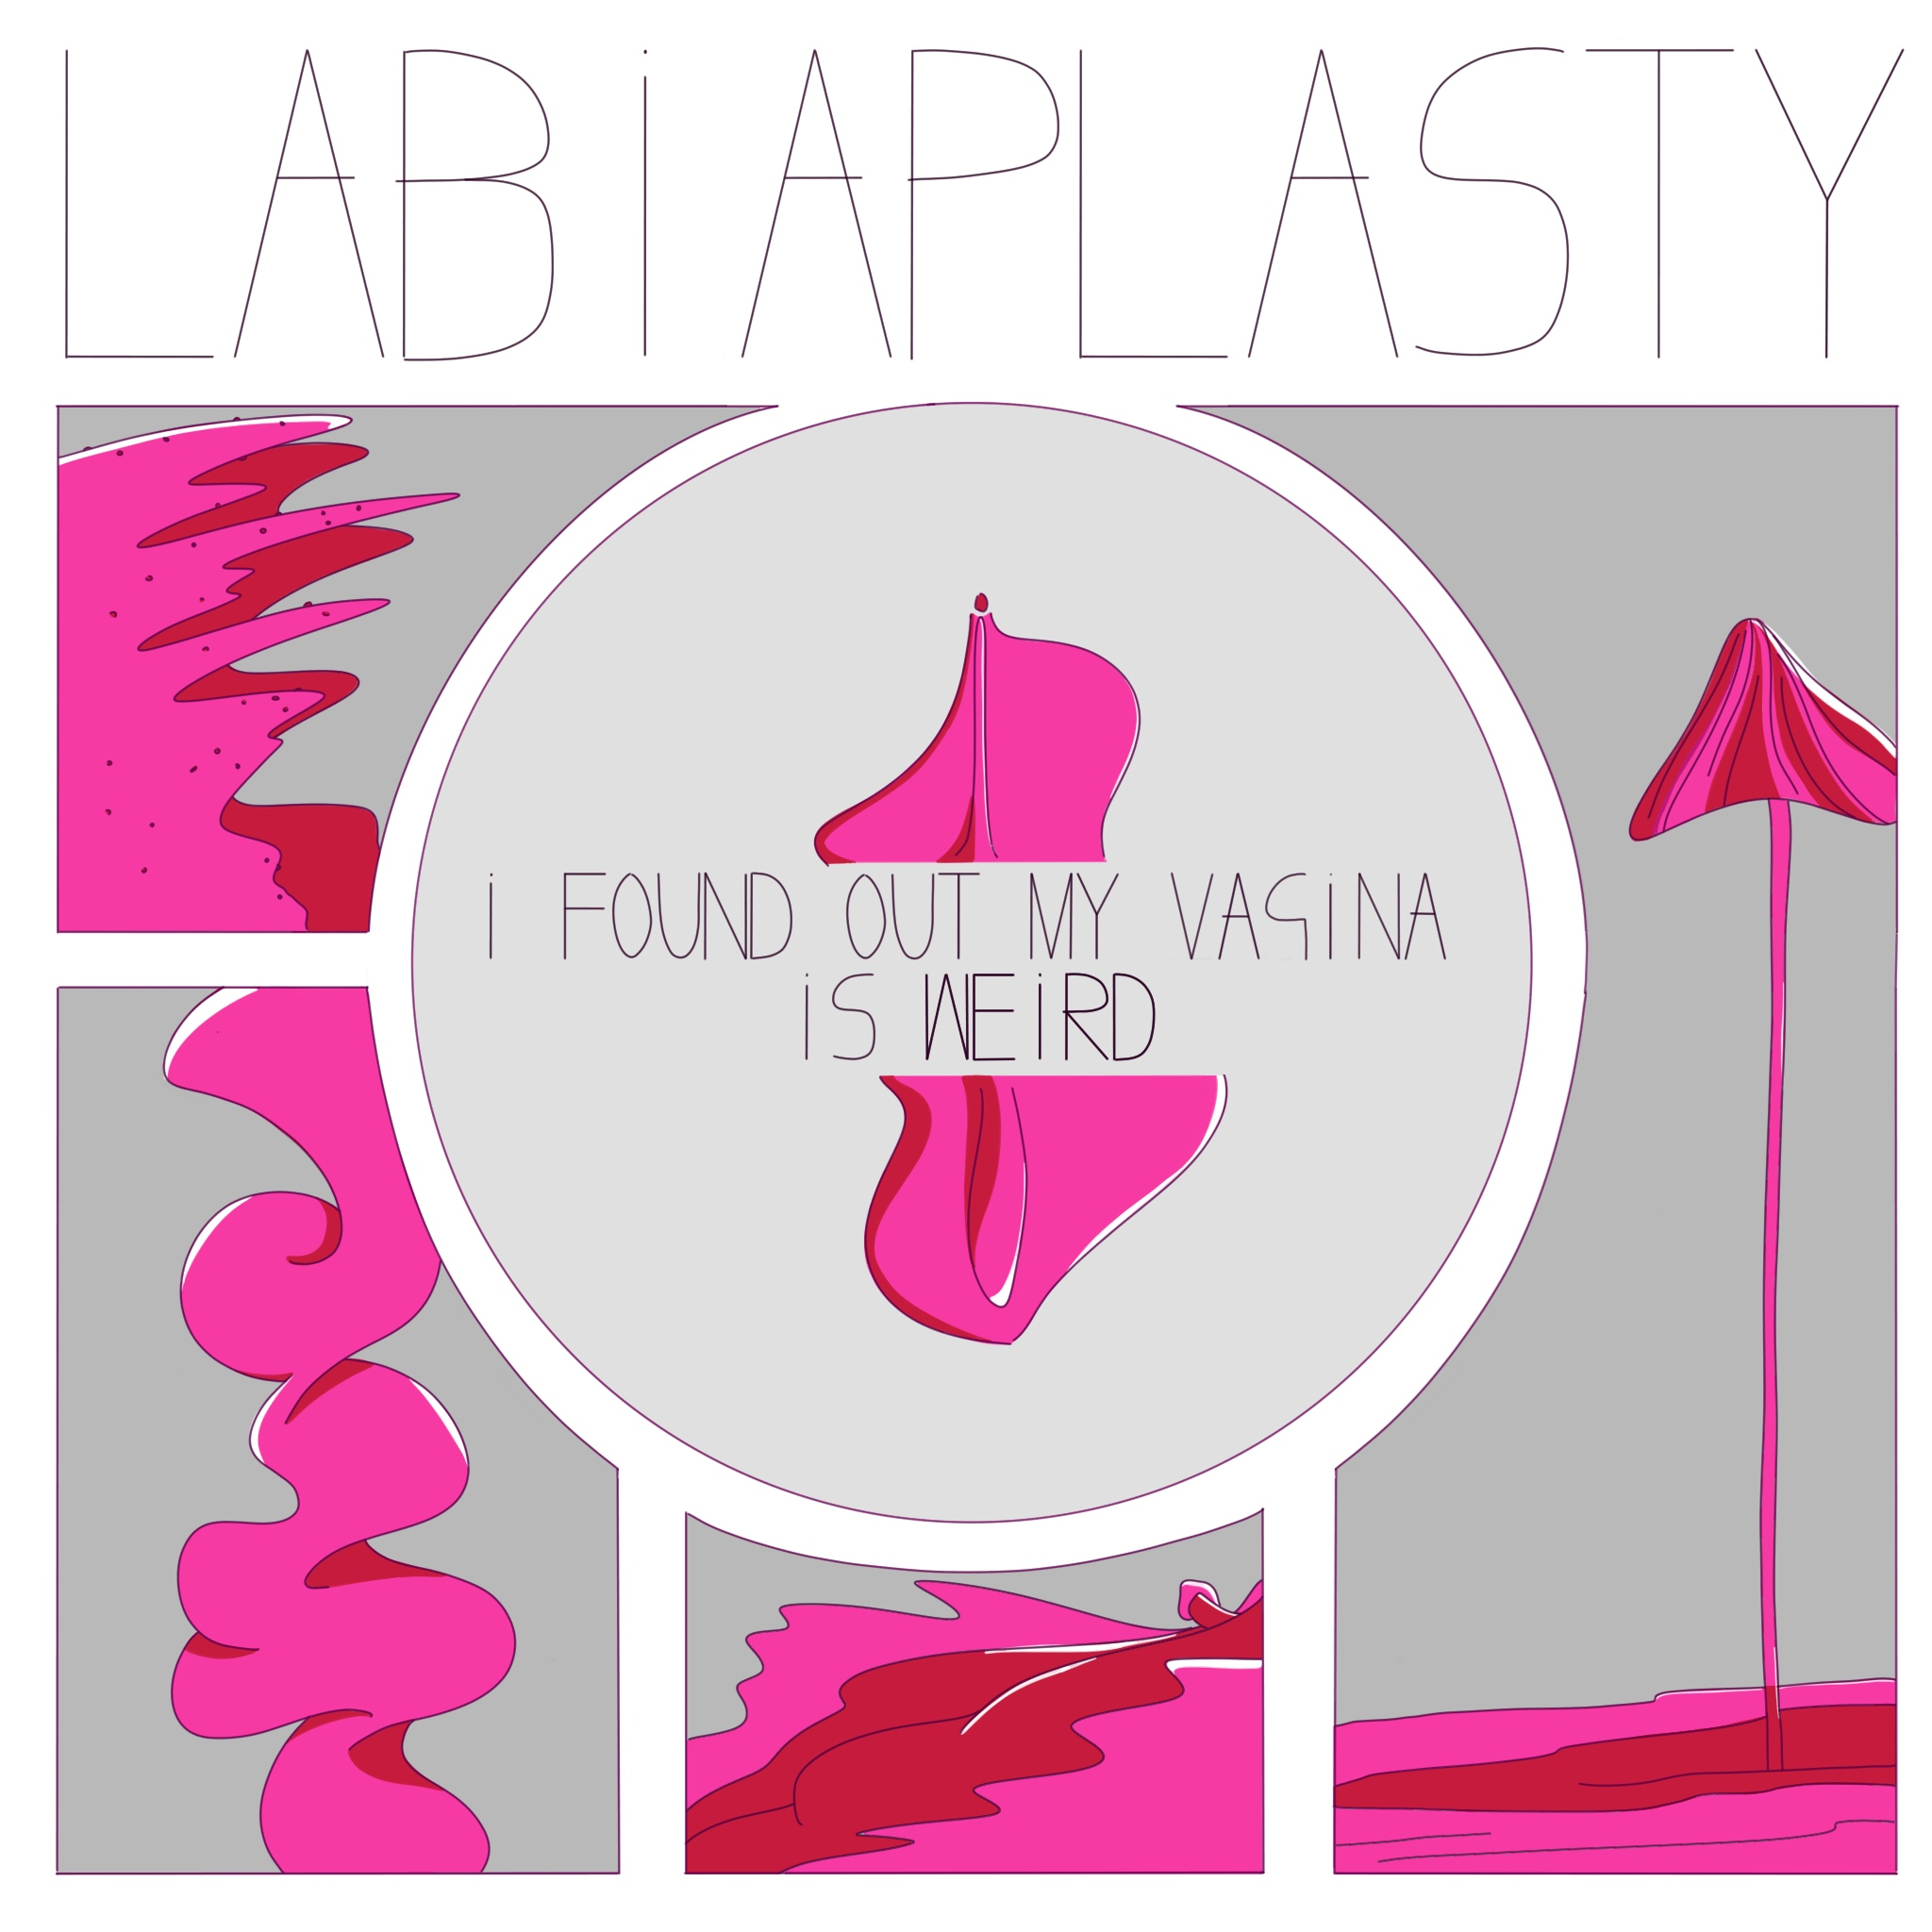 Labiaplasty comic by Rowena Sheehan